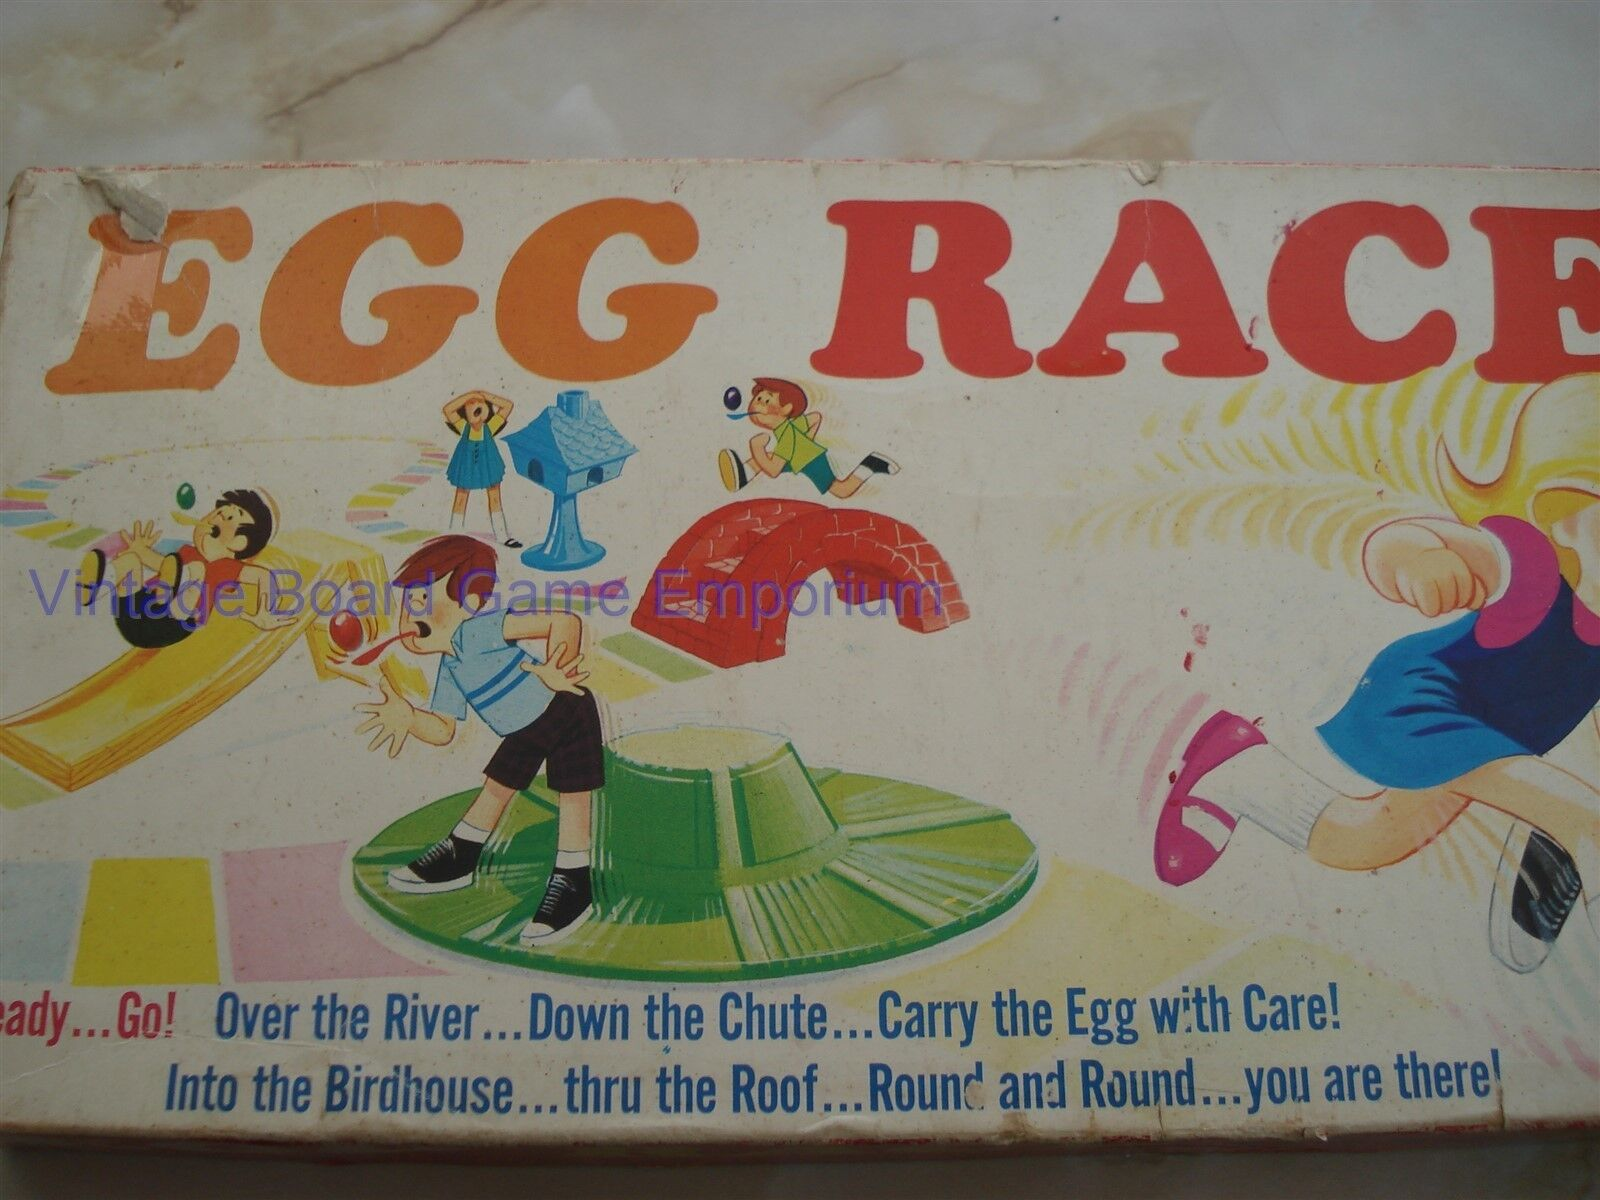 EGG RACE GAME - 1968 1968 1968 - RARE - GOOD ORDER - IDEAL - EGG RACE - FUN  - VINTAGE 111efe